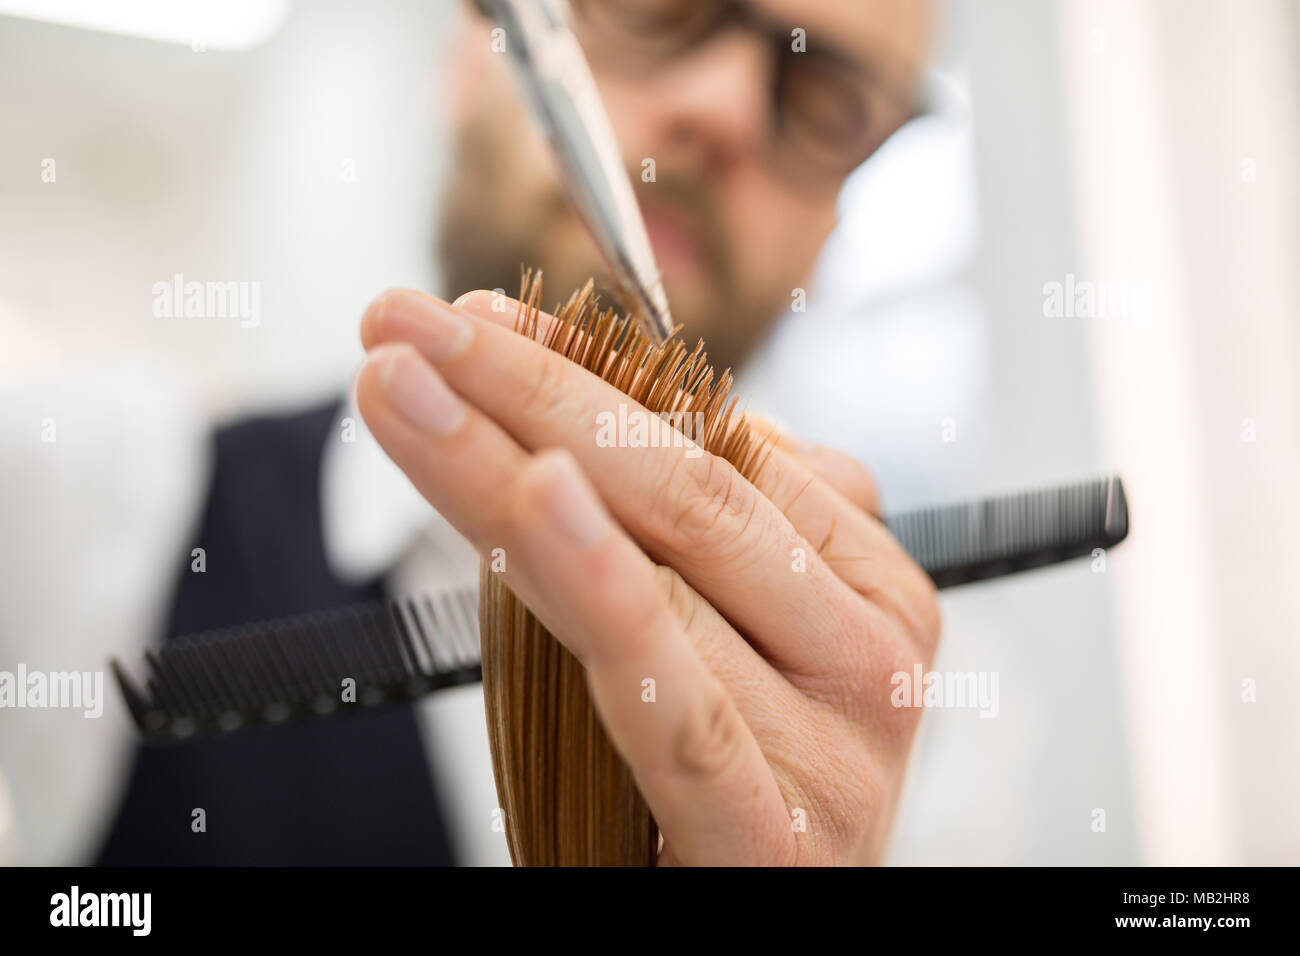 Close up portrait of hairdresser hands cutting hair ends - Stock Image